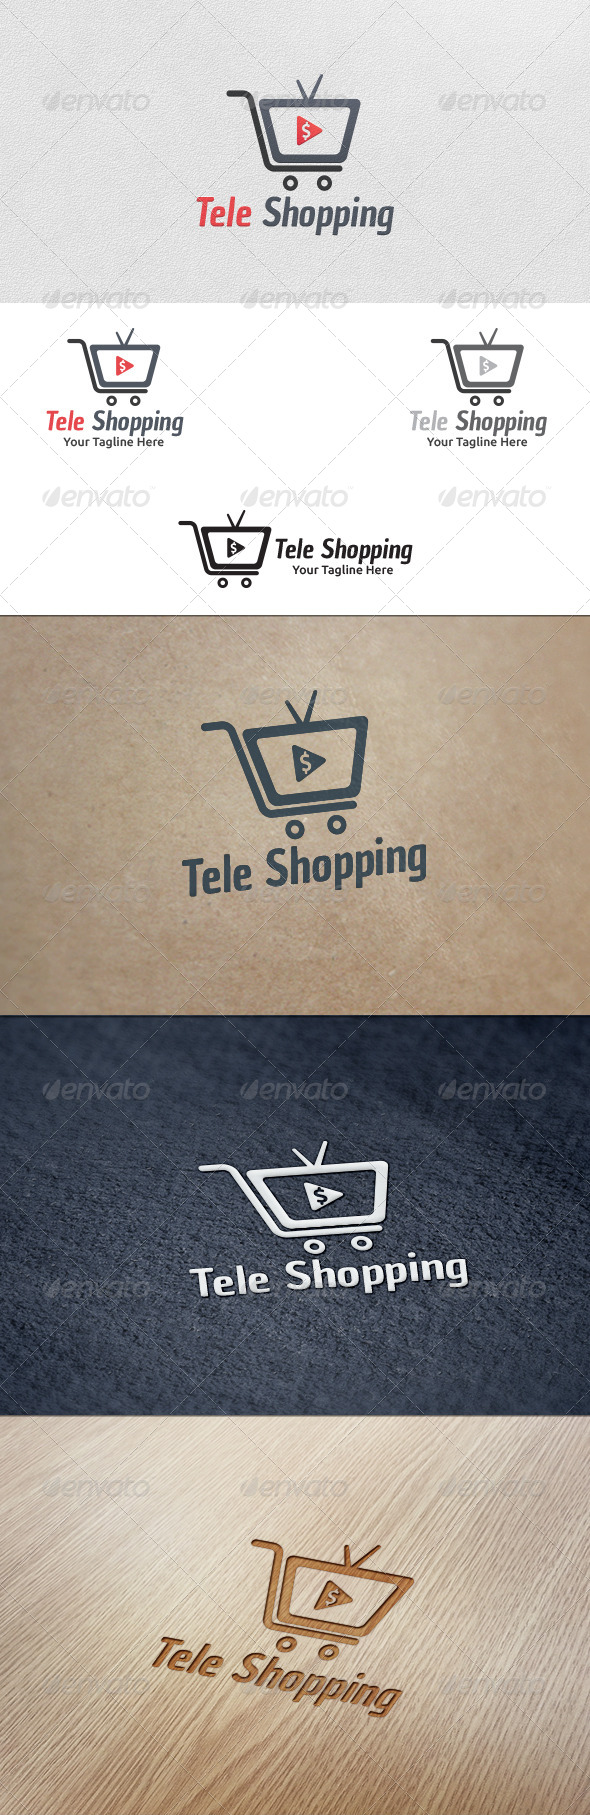 GraphicRiver Tele Shopping Logo Template 5613774